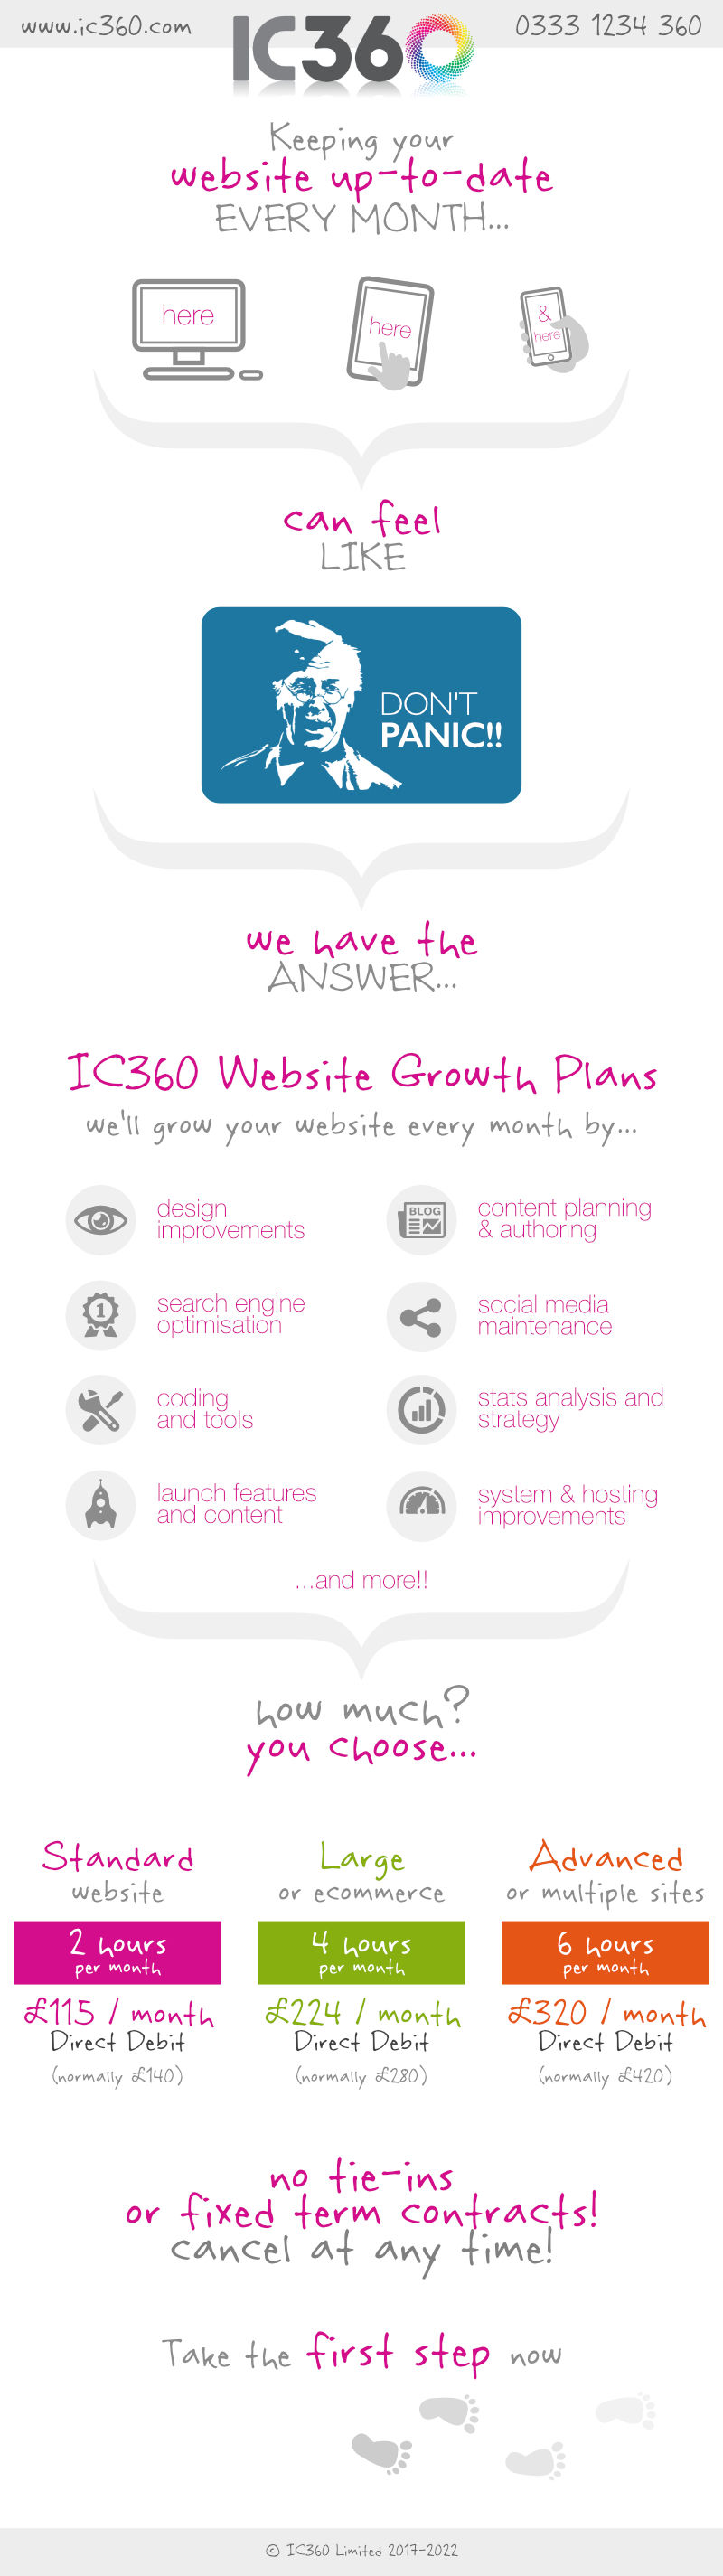 IC360 website growth plans